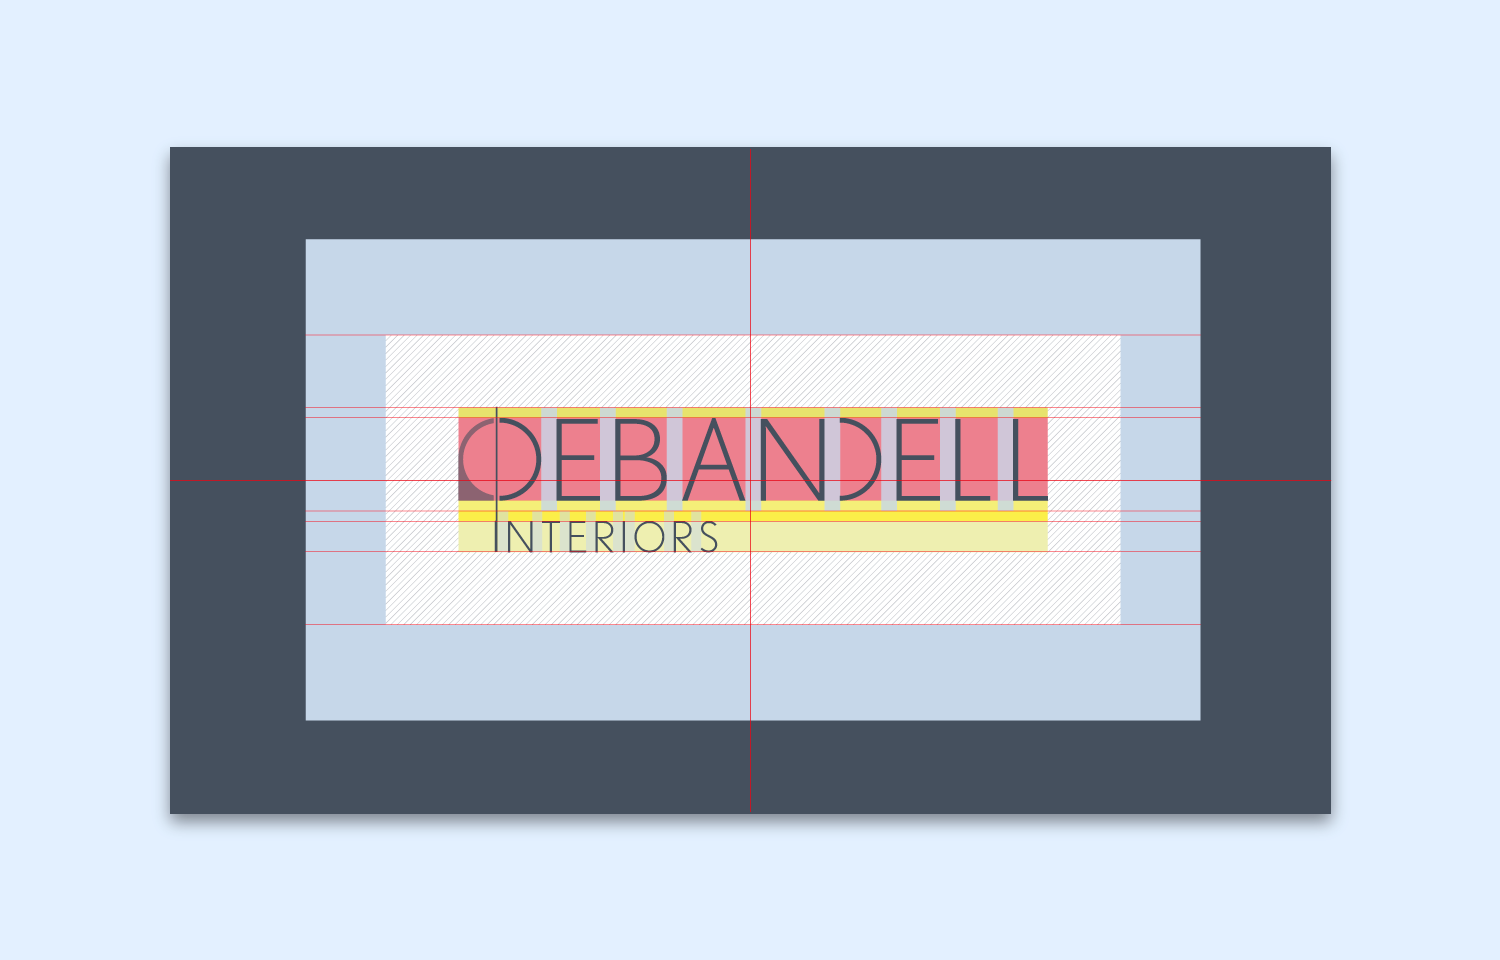 Logo design with layout guides for Debandell Interiors.